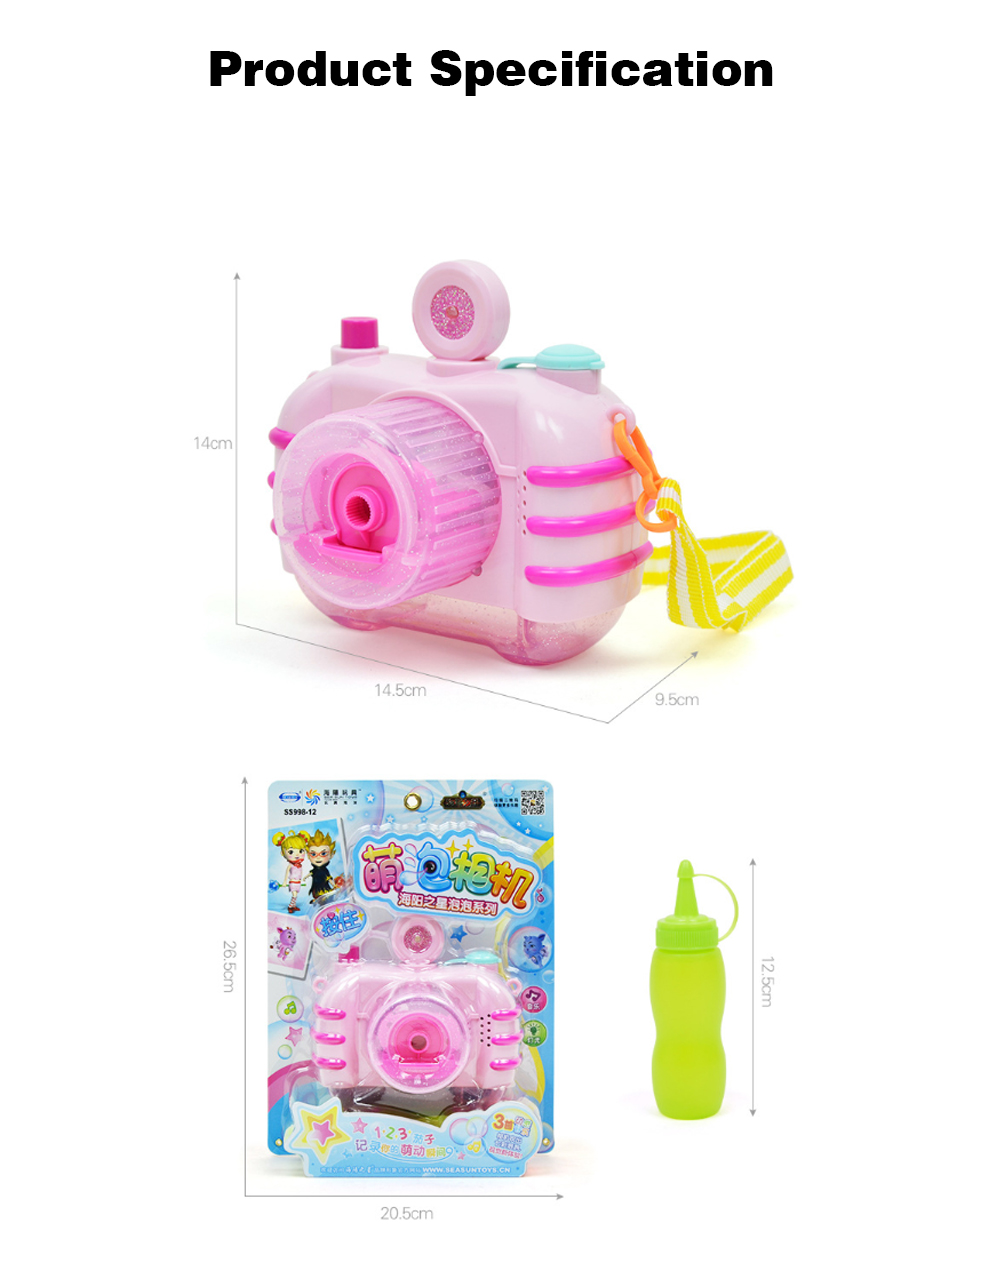 Sea Star Bubble Camera Light Music Electric Blowing Bubble Square Toy for Children to Play 7